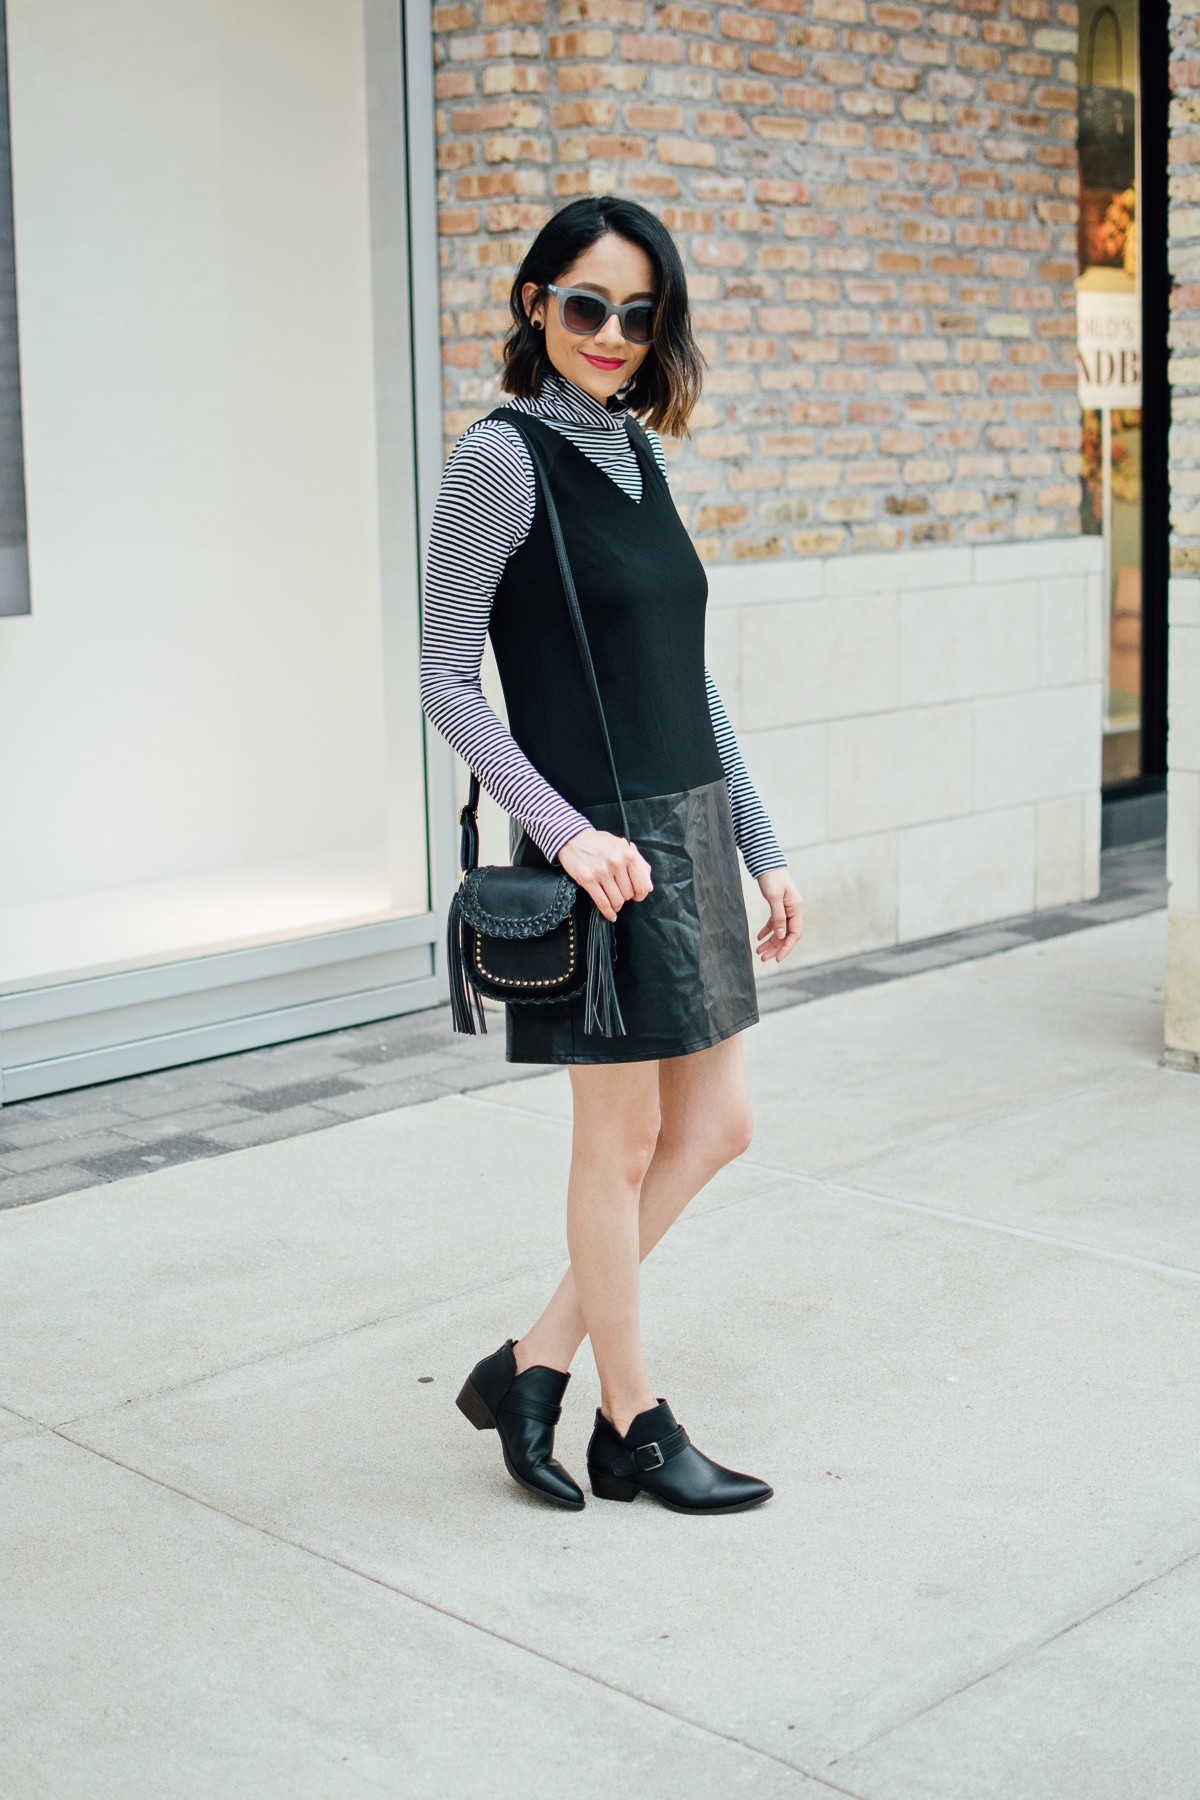 Lilly Beltran of Daily Craving in a chic fall look with a black dress striped top and black ankle boots